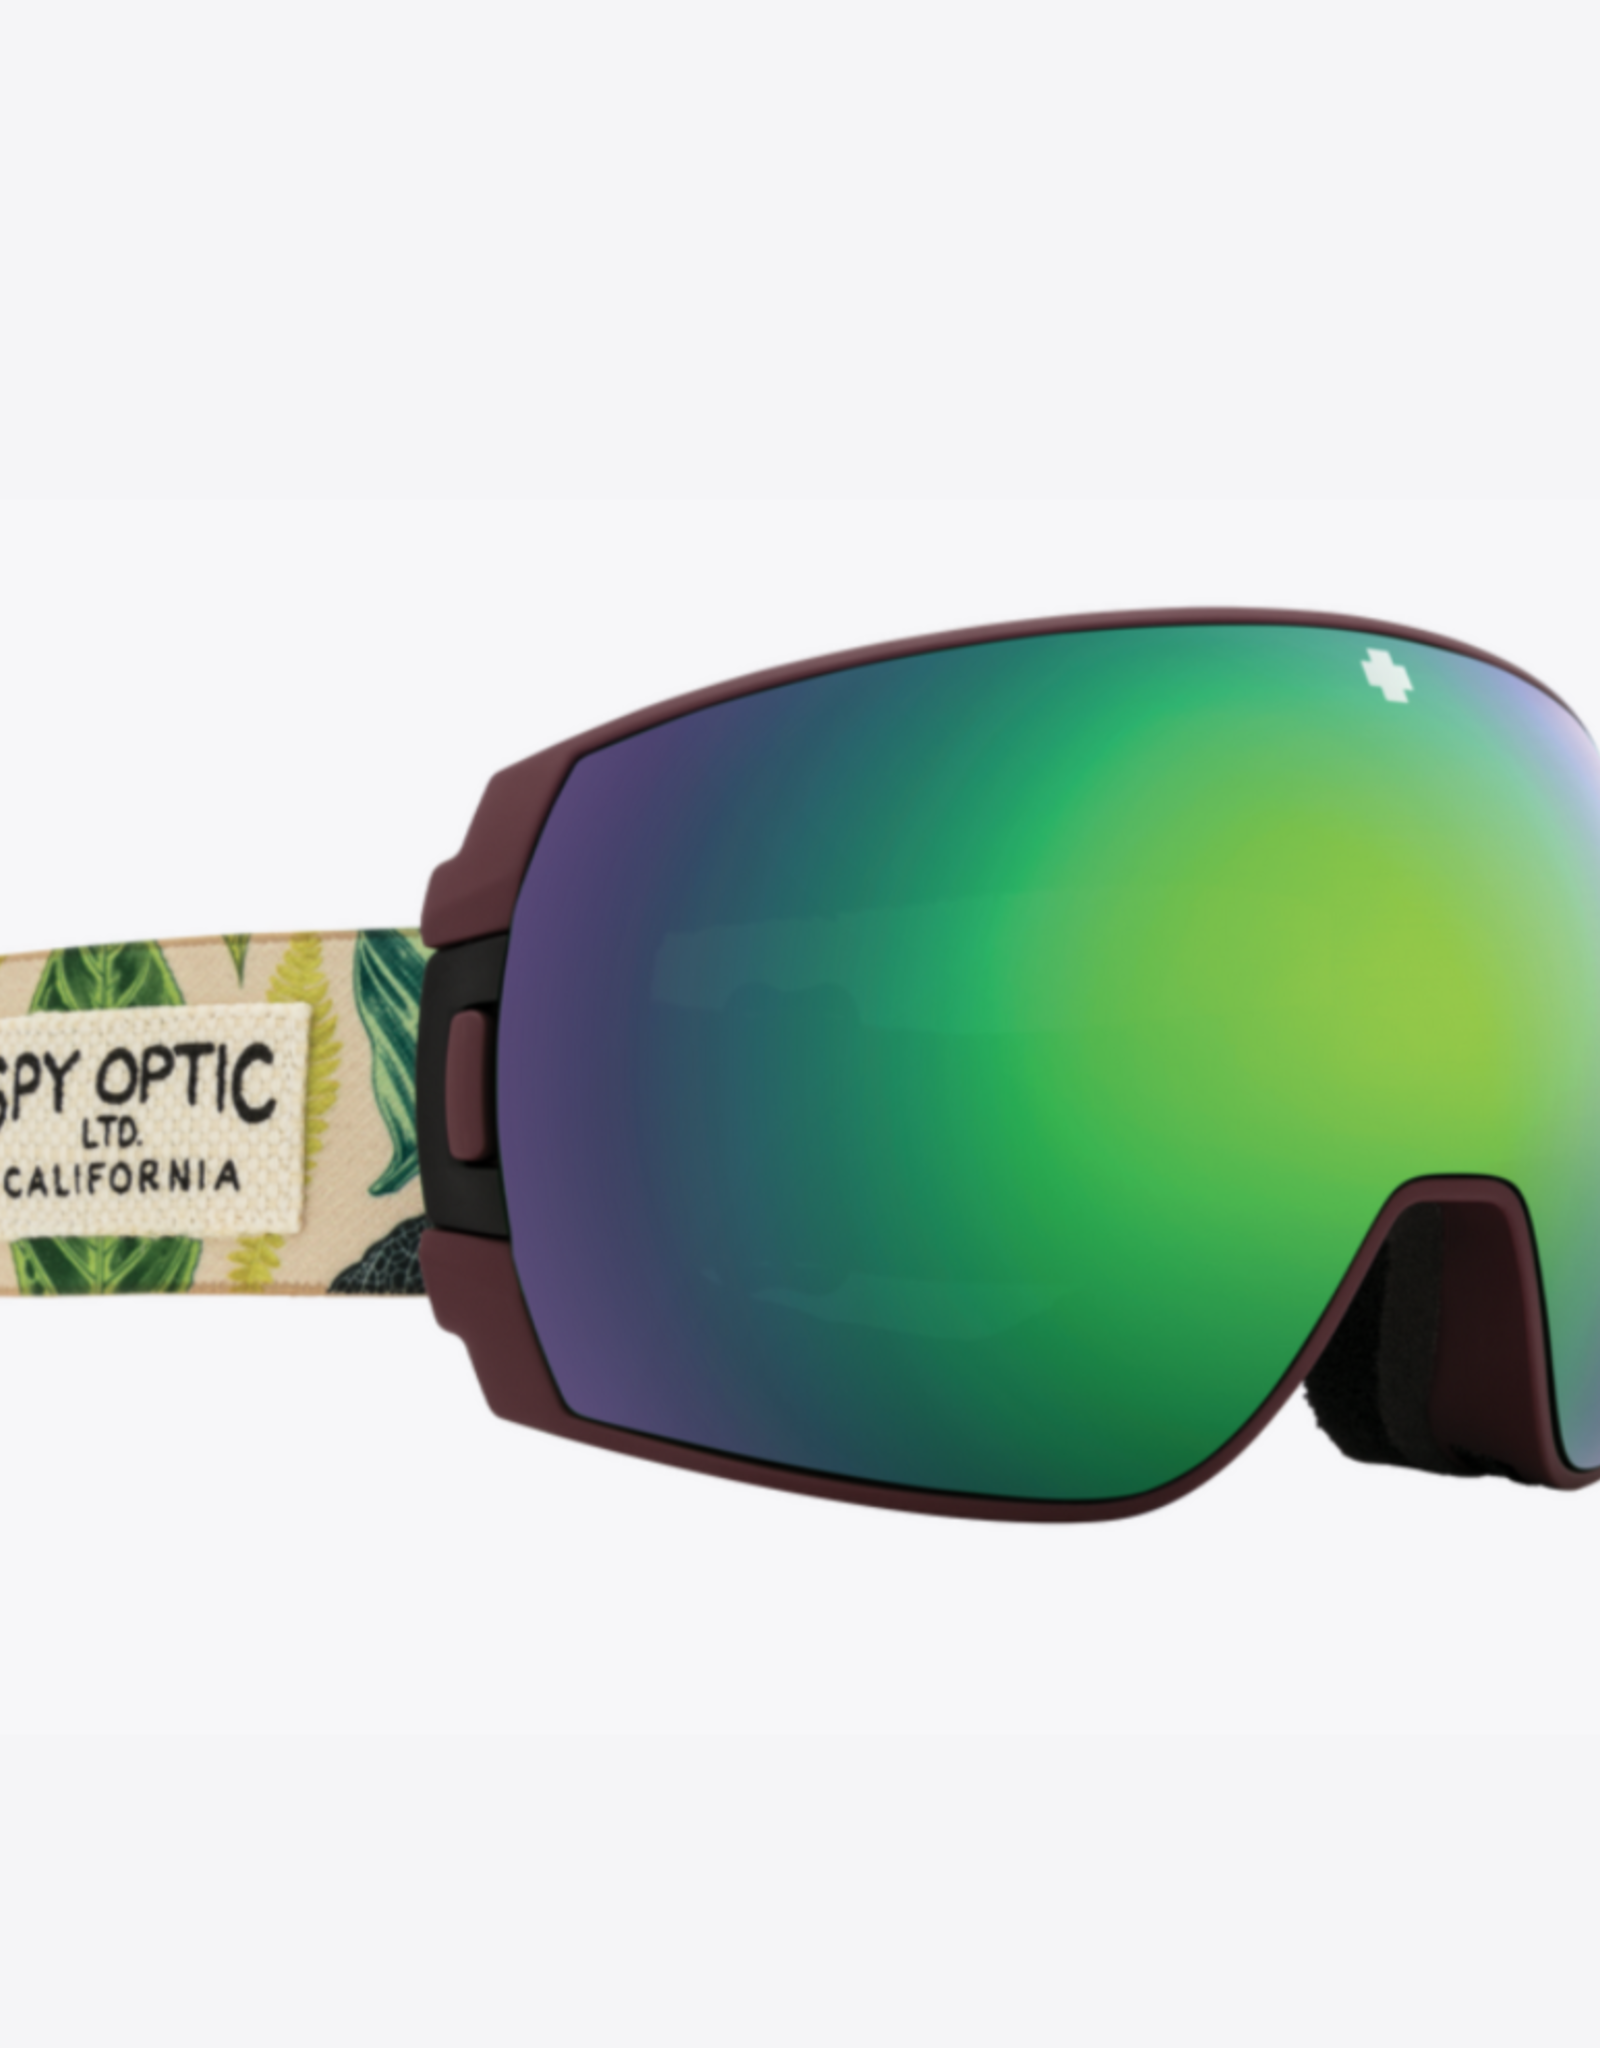 Spy Spy LEGACY SE Legacy SE Botanical - HD Plus Bronze with Green Spectra Mirror - HD Plus LL Persimmon with Silver Spectra Mirror